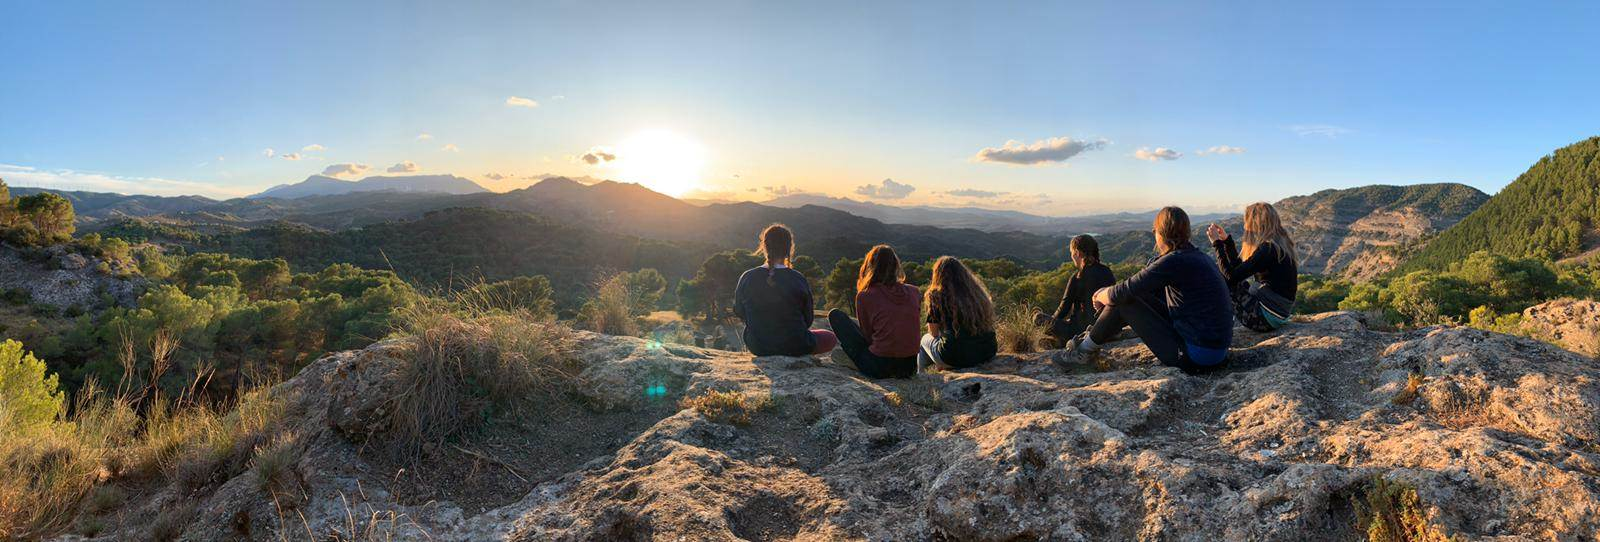 Watch the sunset over the Andalusian mountains after a day of hiking